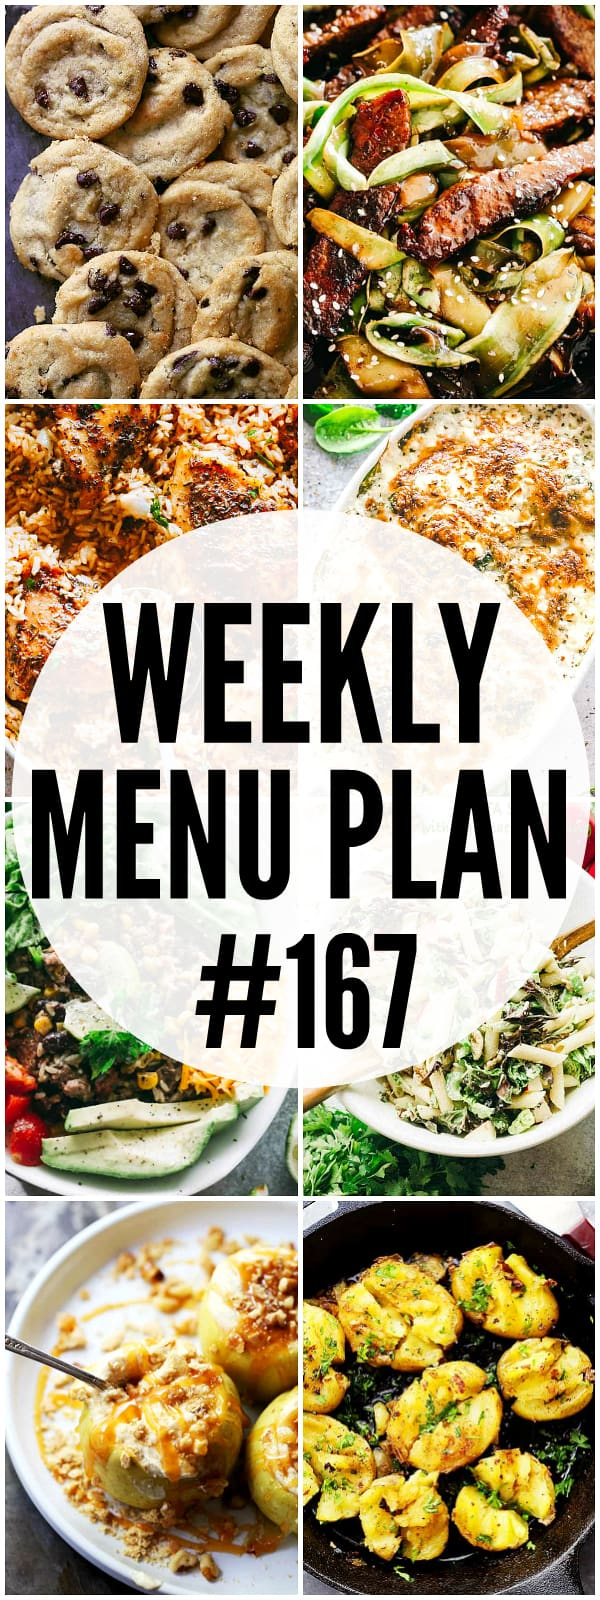 WEEKLY MENU PLAN (#167) - A delicious collection of dinner, side dish and dessert recipes to help you plan your weekly menu and make life easier for you!